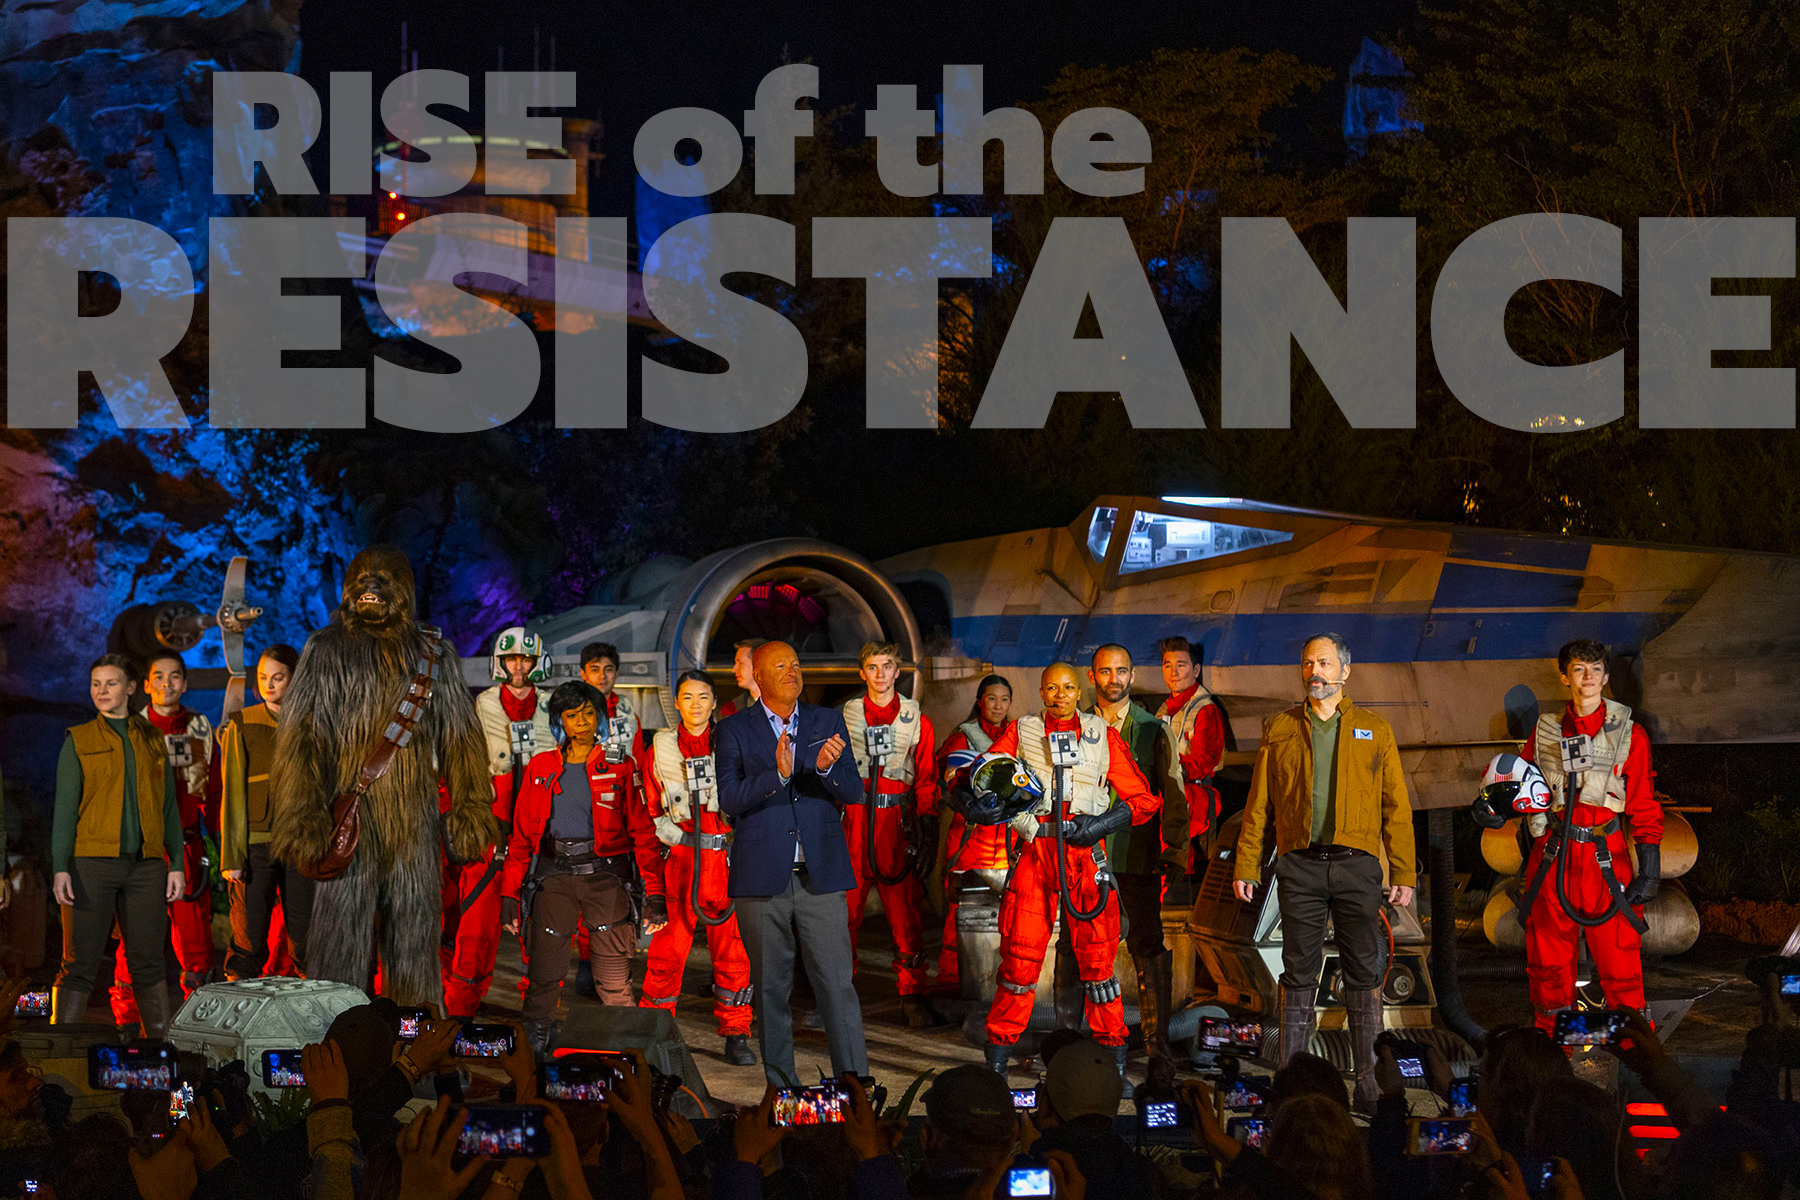 Star Wars: Rise of the Resistance Makes Galactic Debut at Walt Disney World Resort